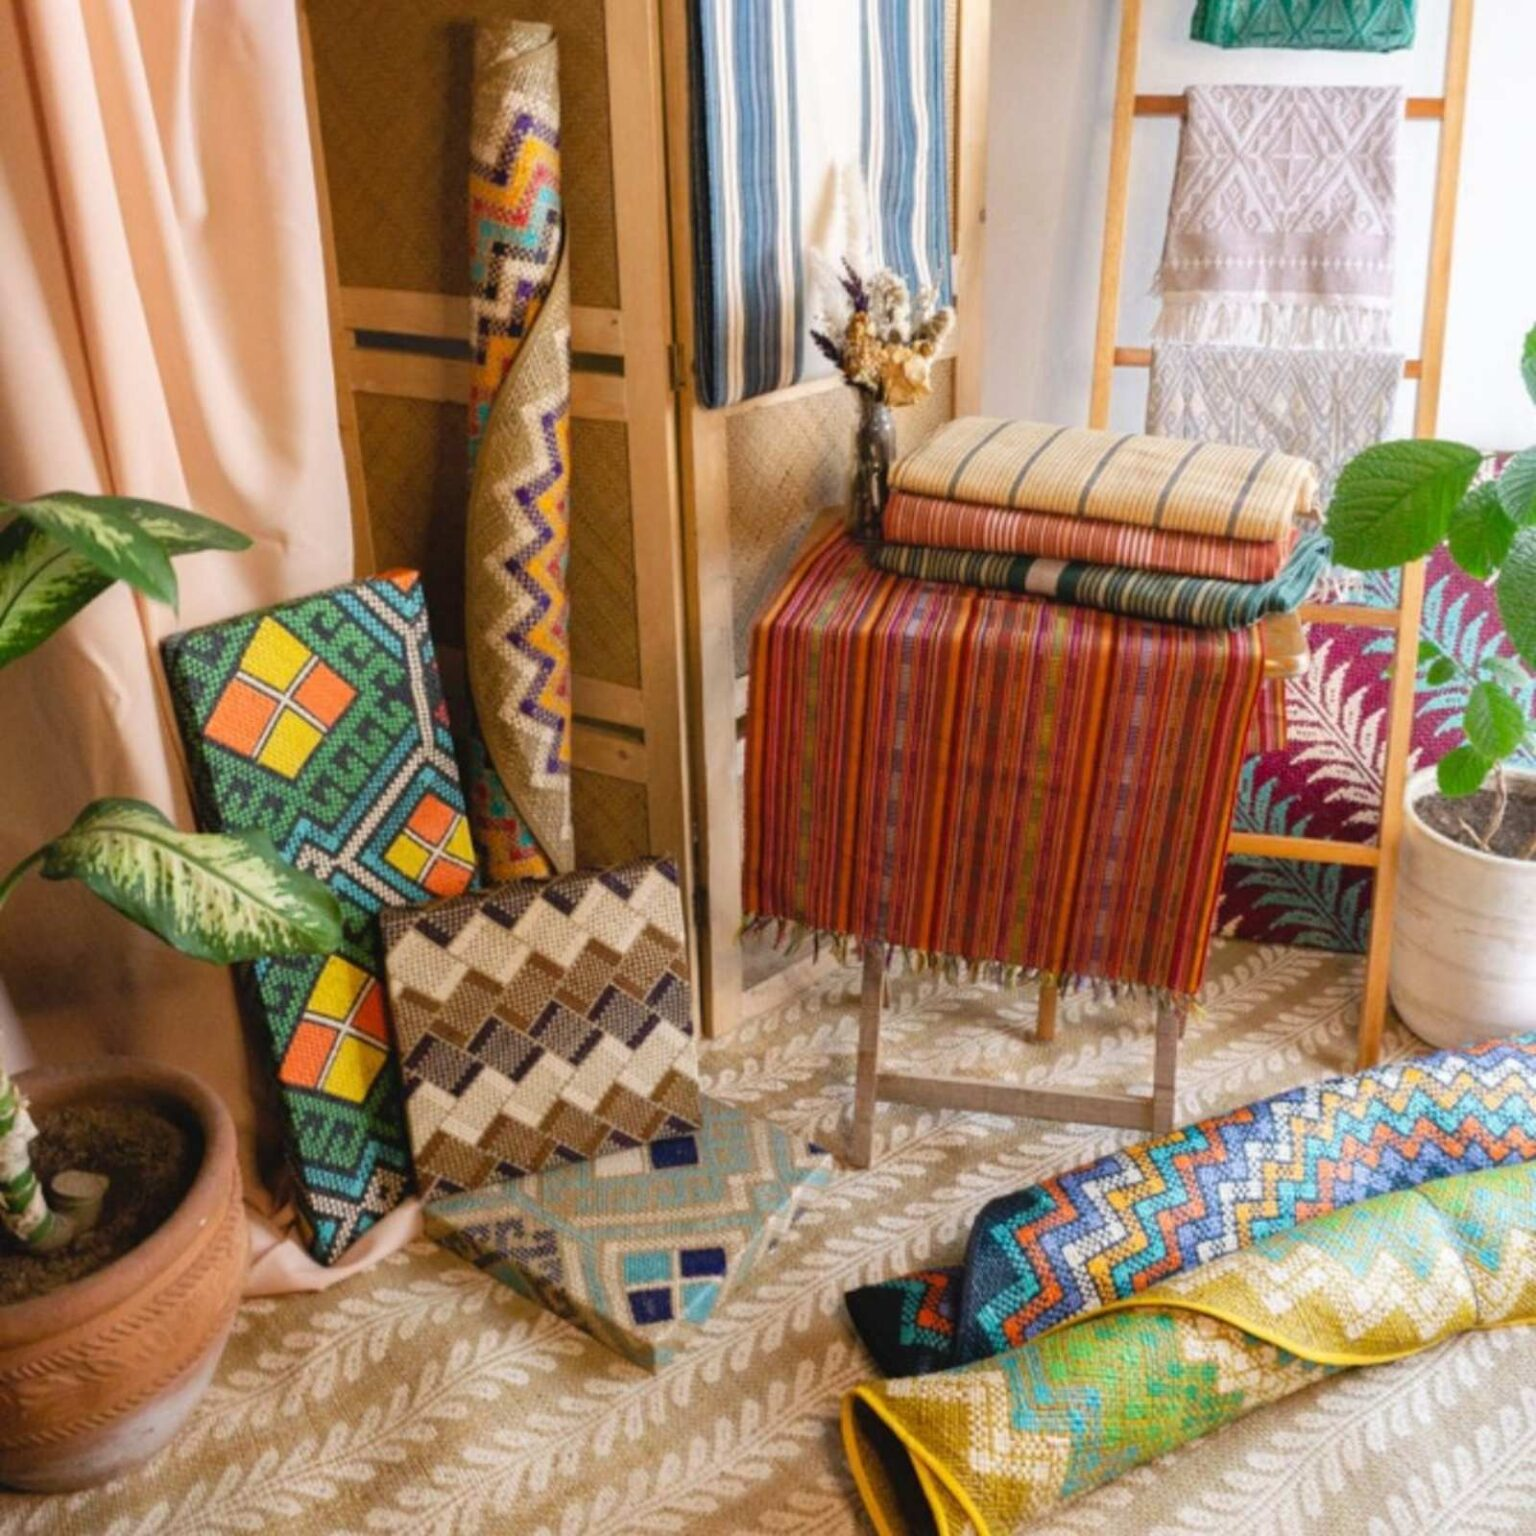 Likhang HABI Kalayaan Online Fair showcases the best and finest local weaves